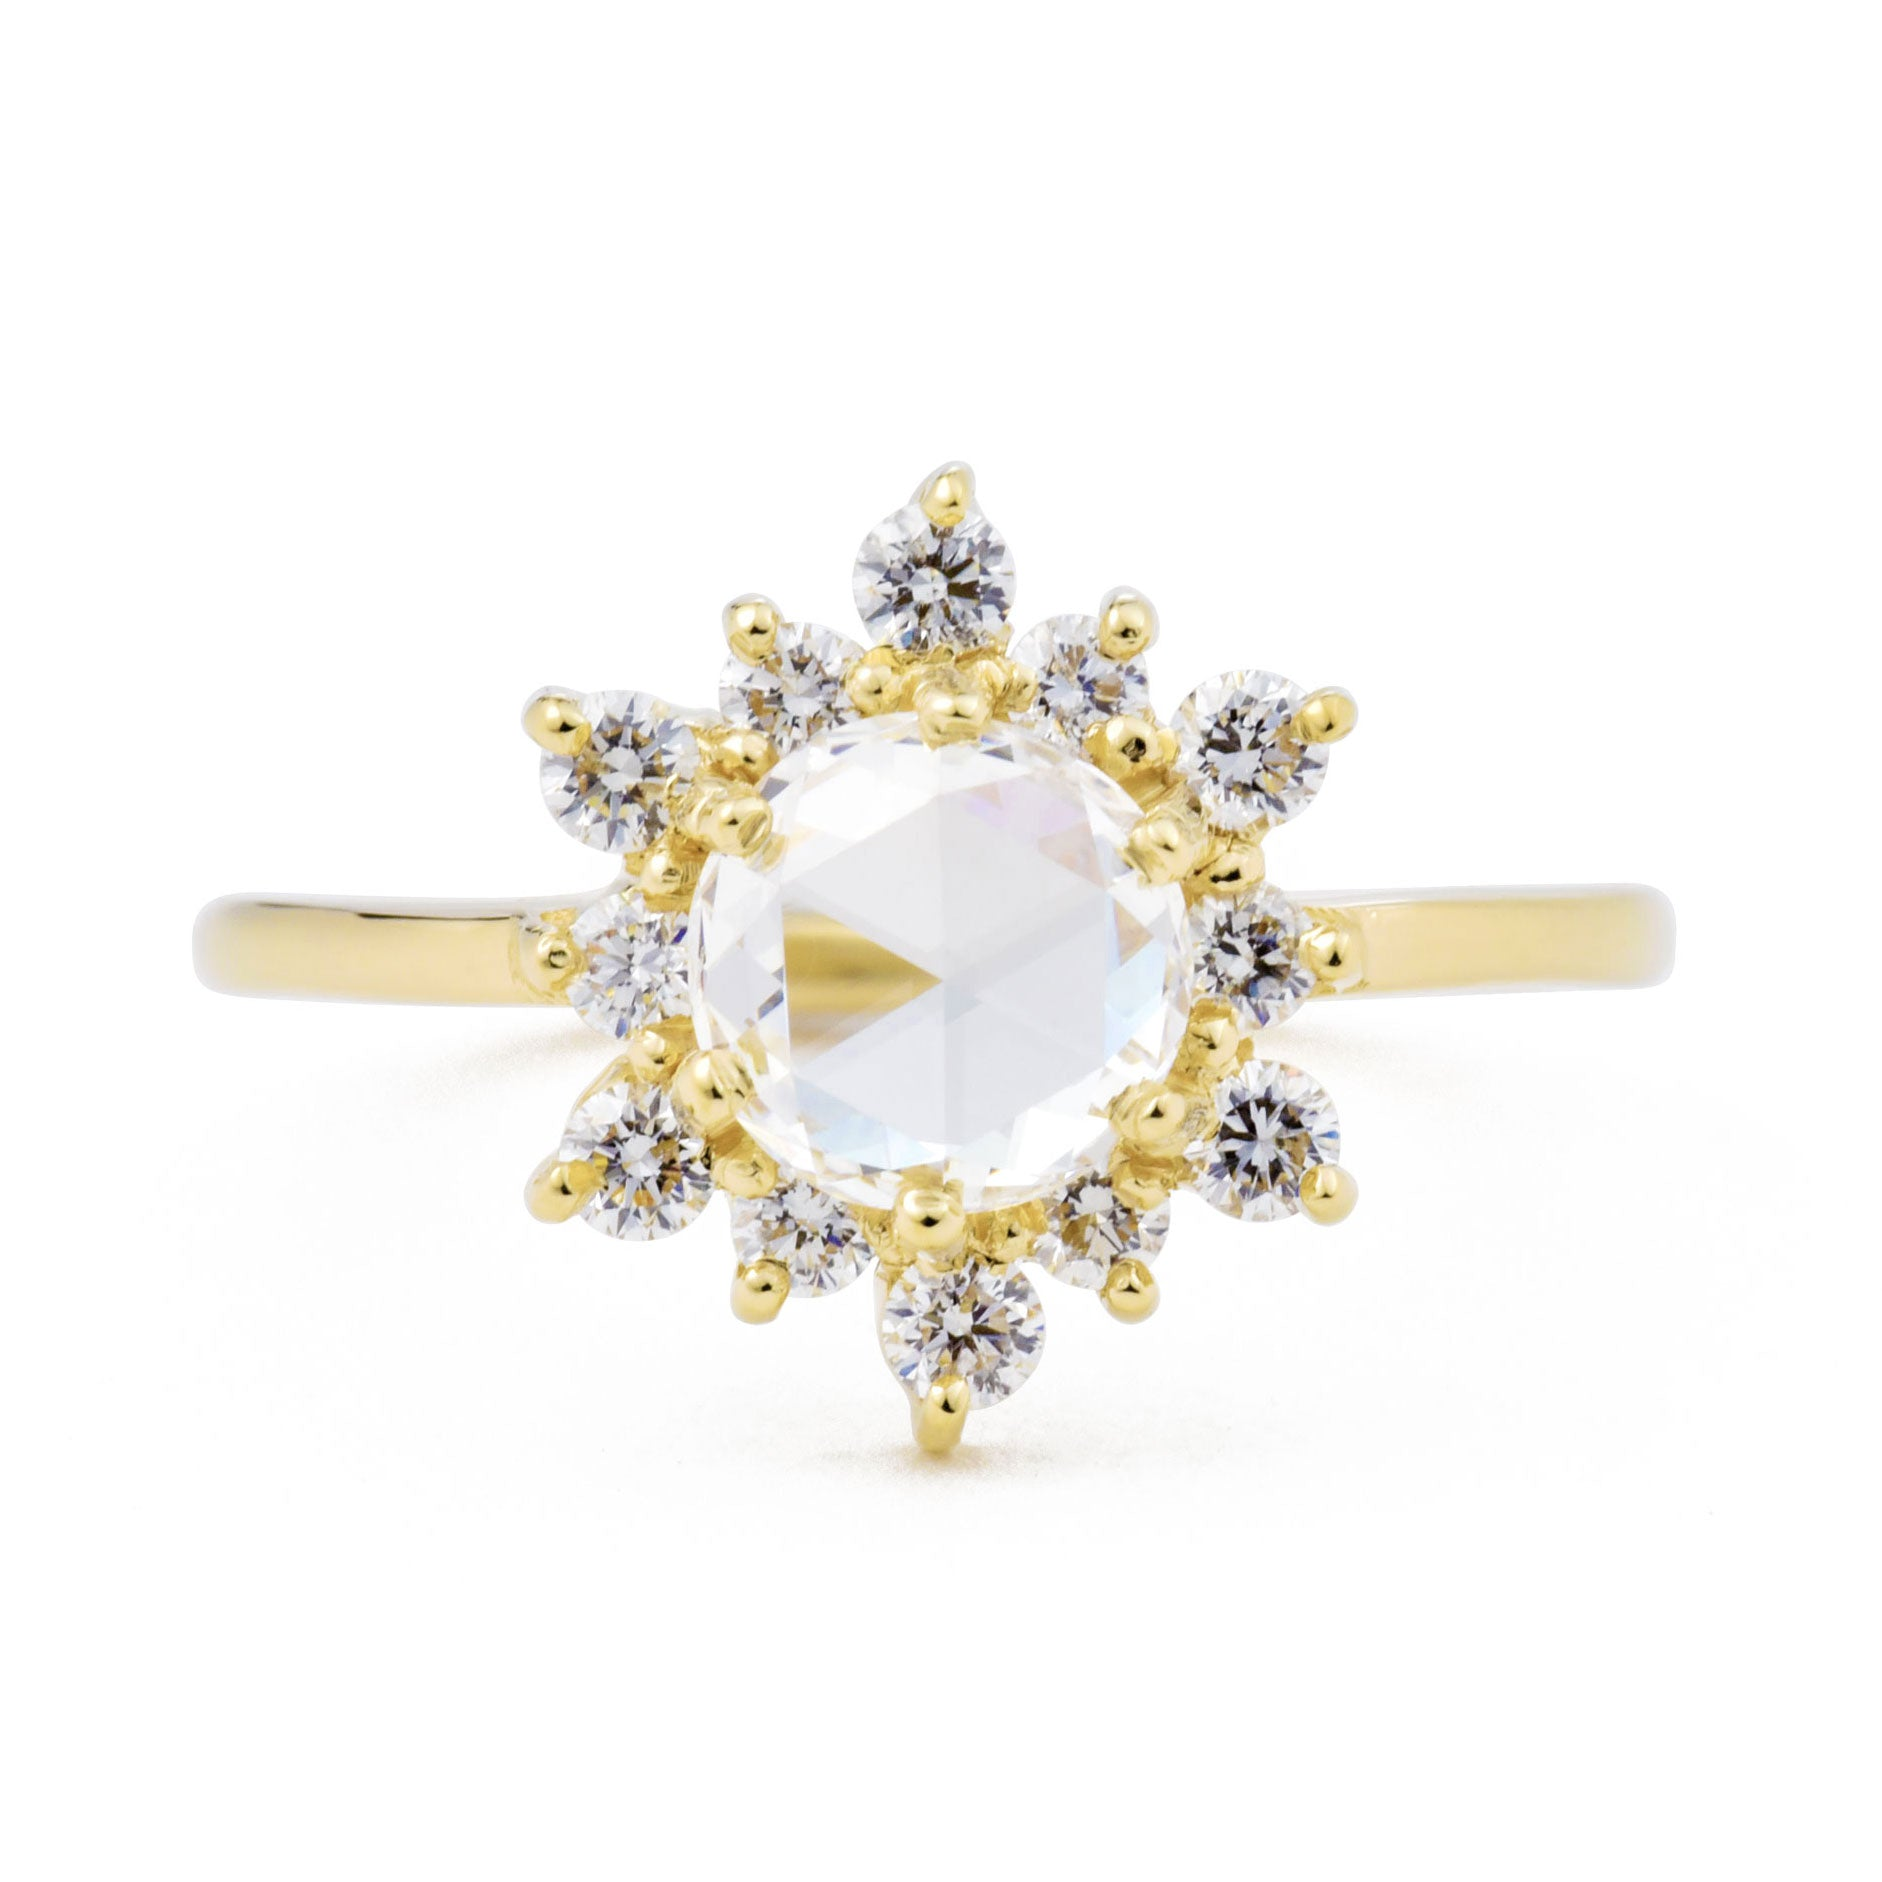 Marisol-colorless-rose-cut-diamond-engagement-ring-with-halo